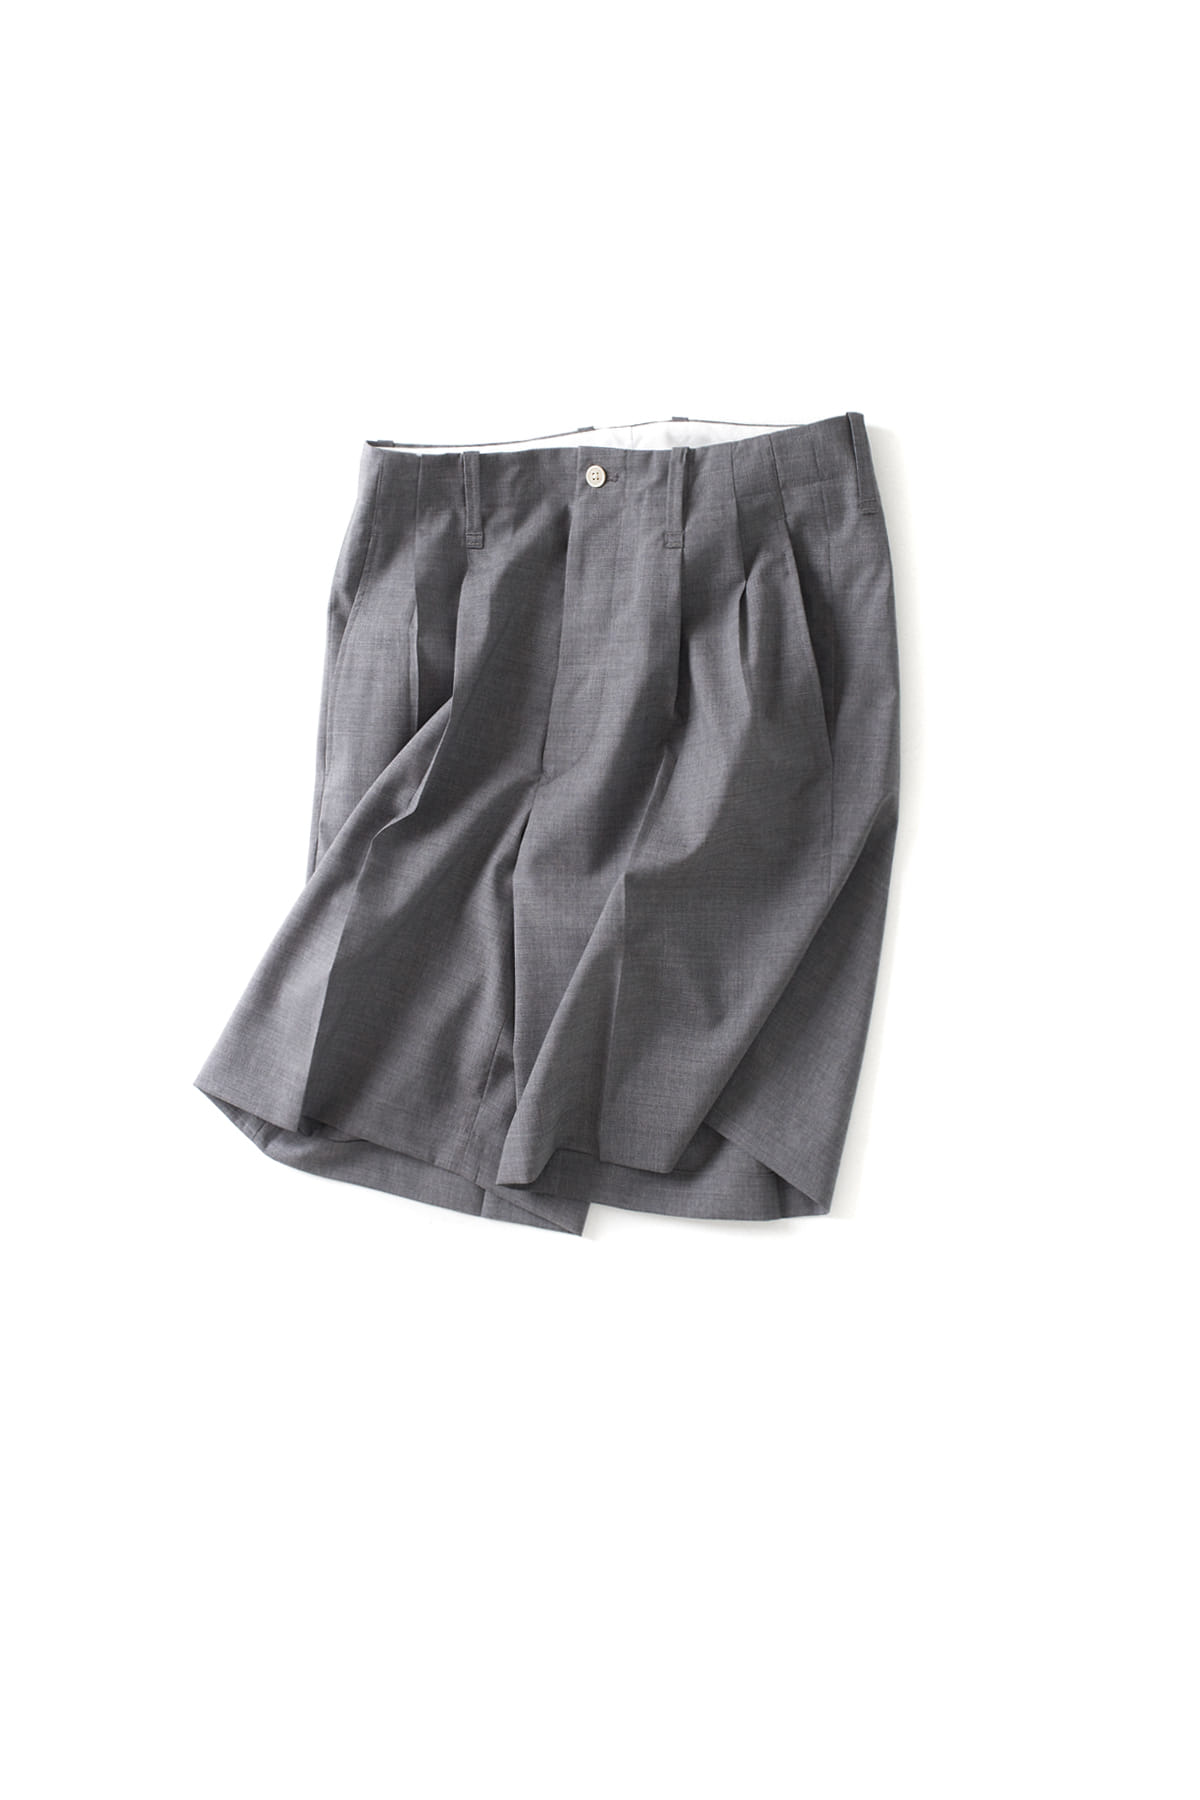 Scye : Pleated Wool Shorts (Grey)